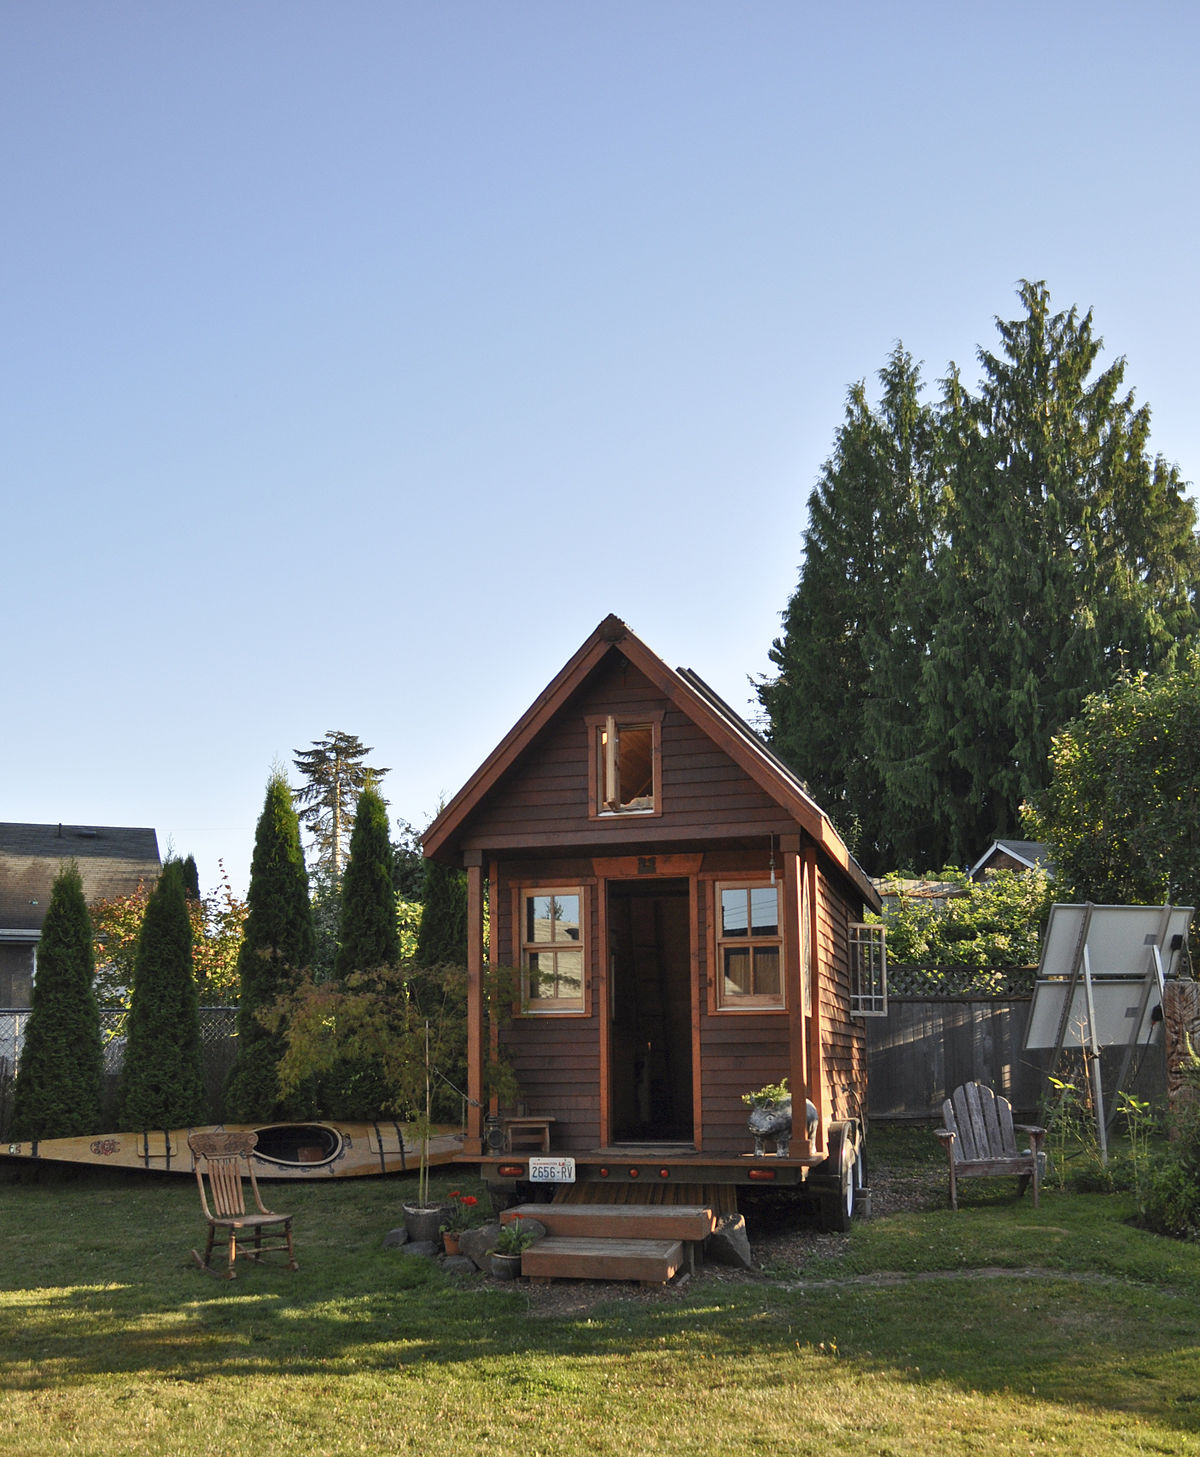 File:Tiny house in yard, Portland.jpg - Wikimedia Commons